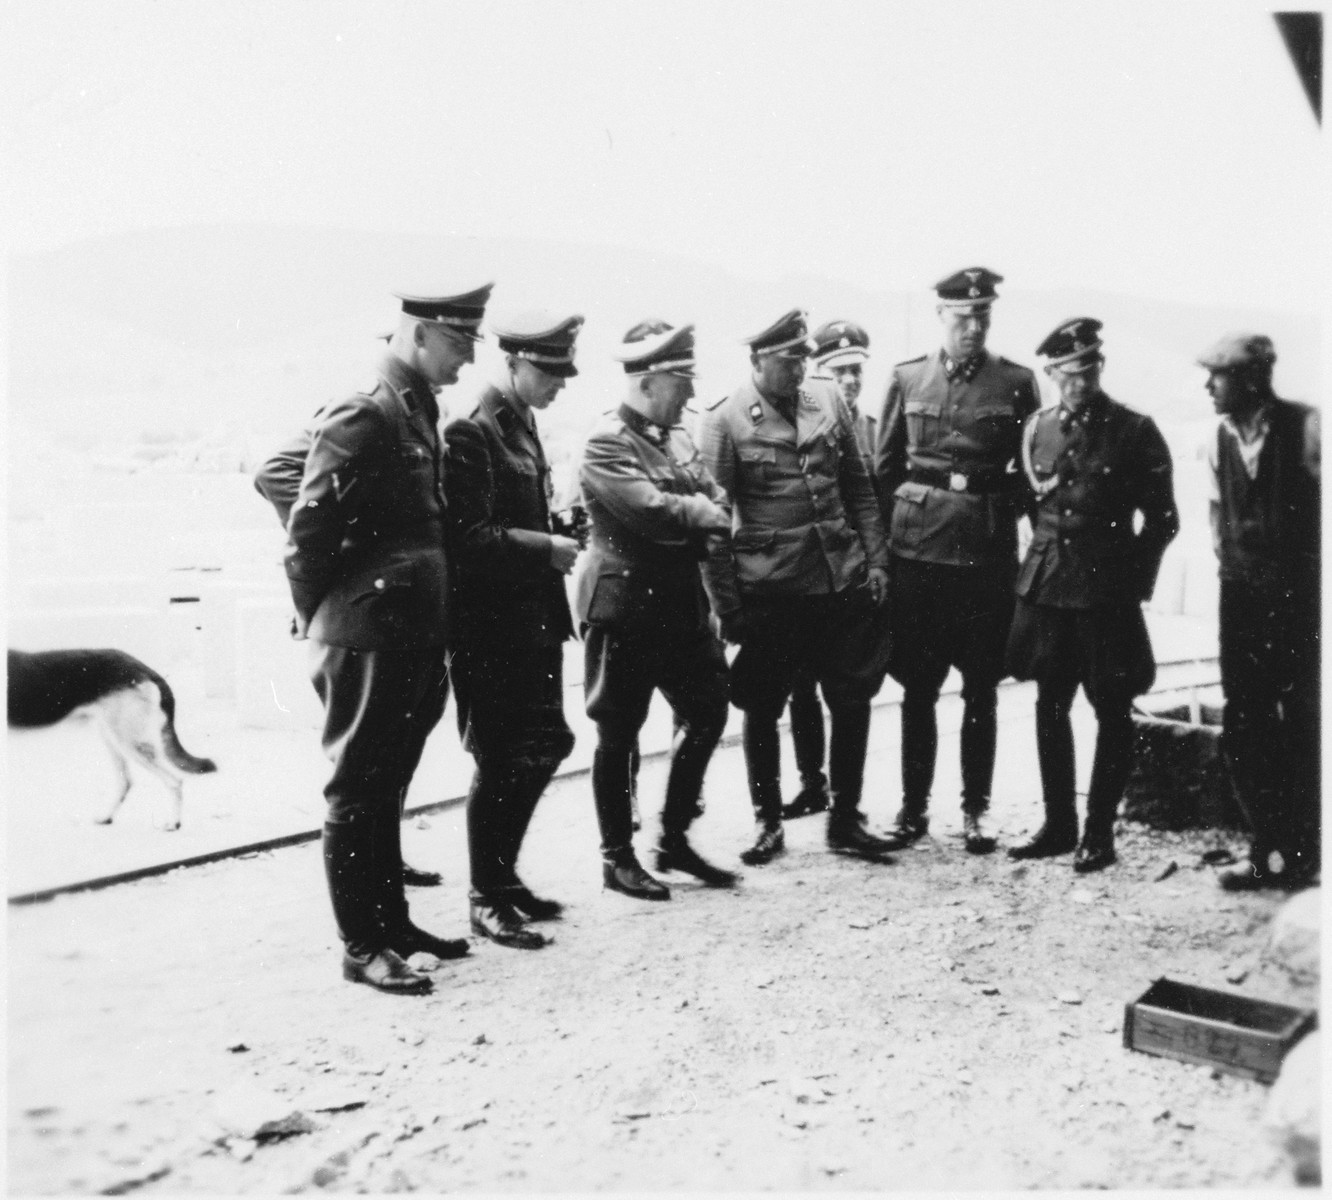 SS Obergruppenführer Ernst Schmauser inspects the Gross-Rosen concentration camp in the company of other SS officers.  Schmauser is pictured third from the left.  Arthur Roedl is next to him in the center.  Roedl's adjutant, Kuno Schramm is the officer on the far right.